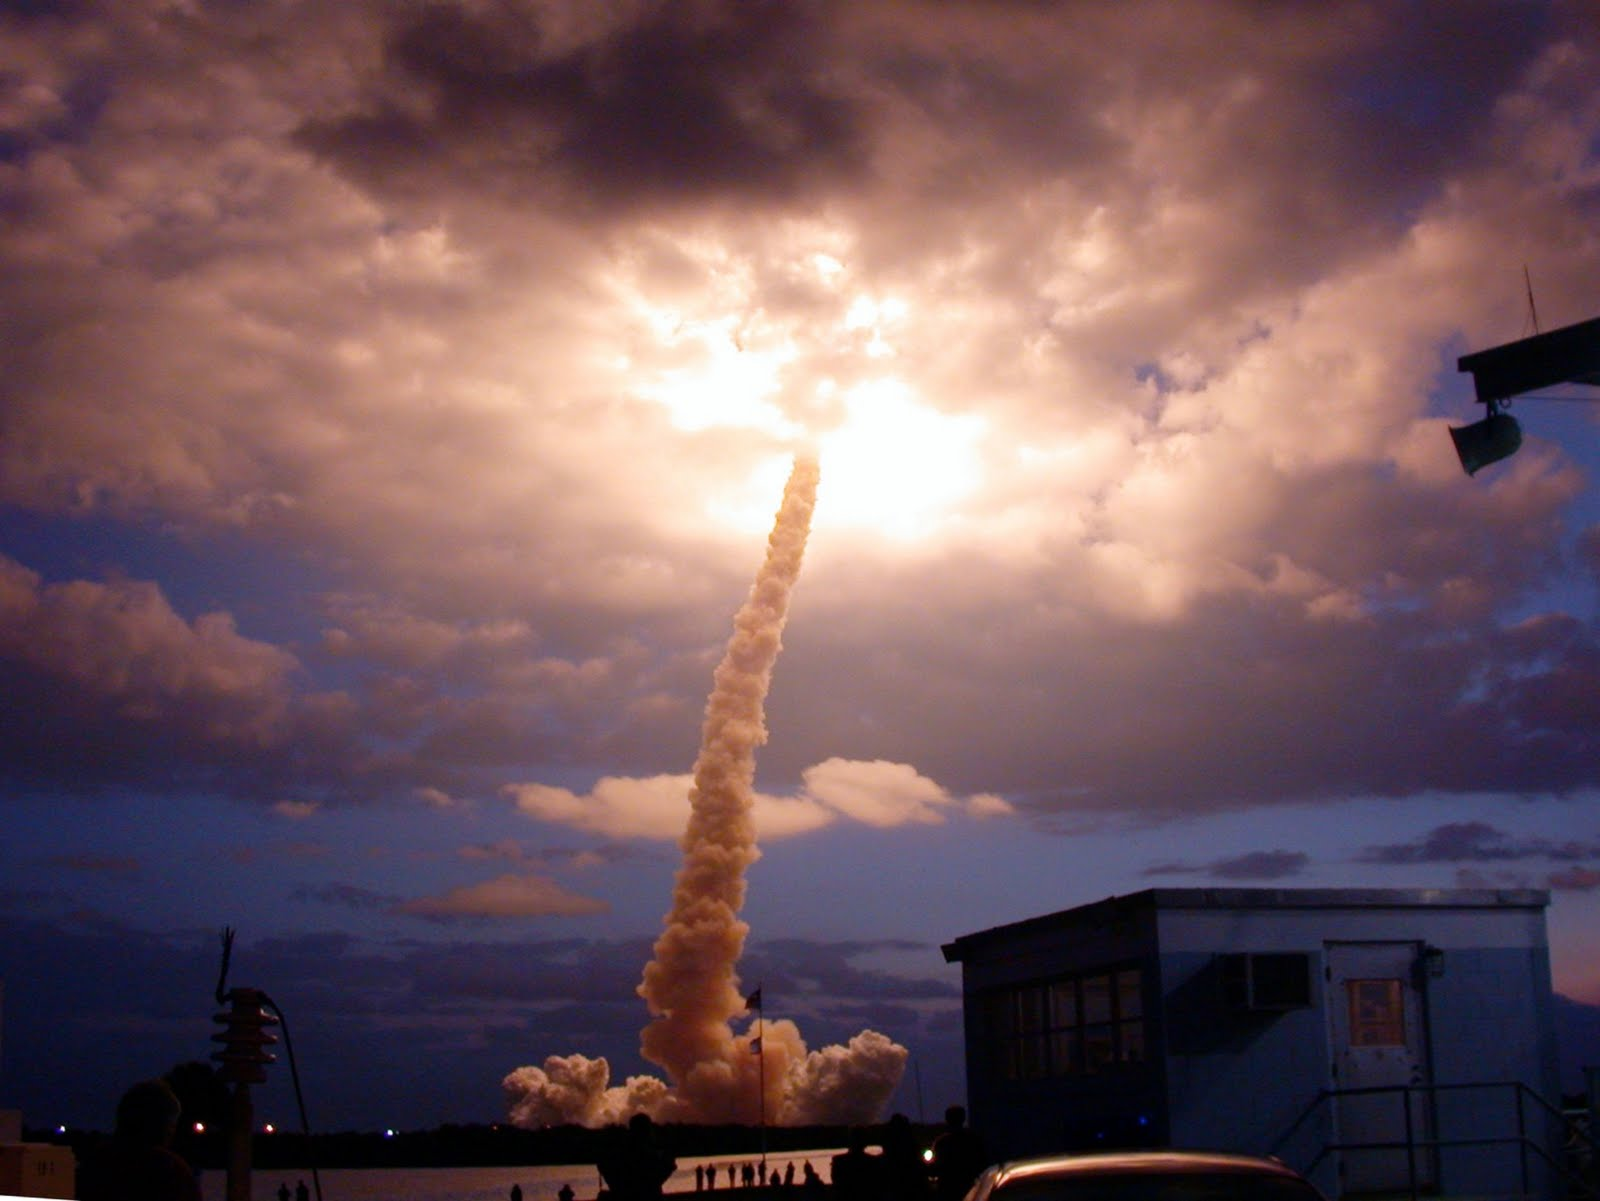 gpw-200702-76-NASA-STS109-S-020-pre-dawn-liftoff-Space-Shuttle ...